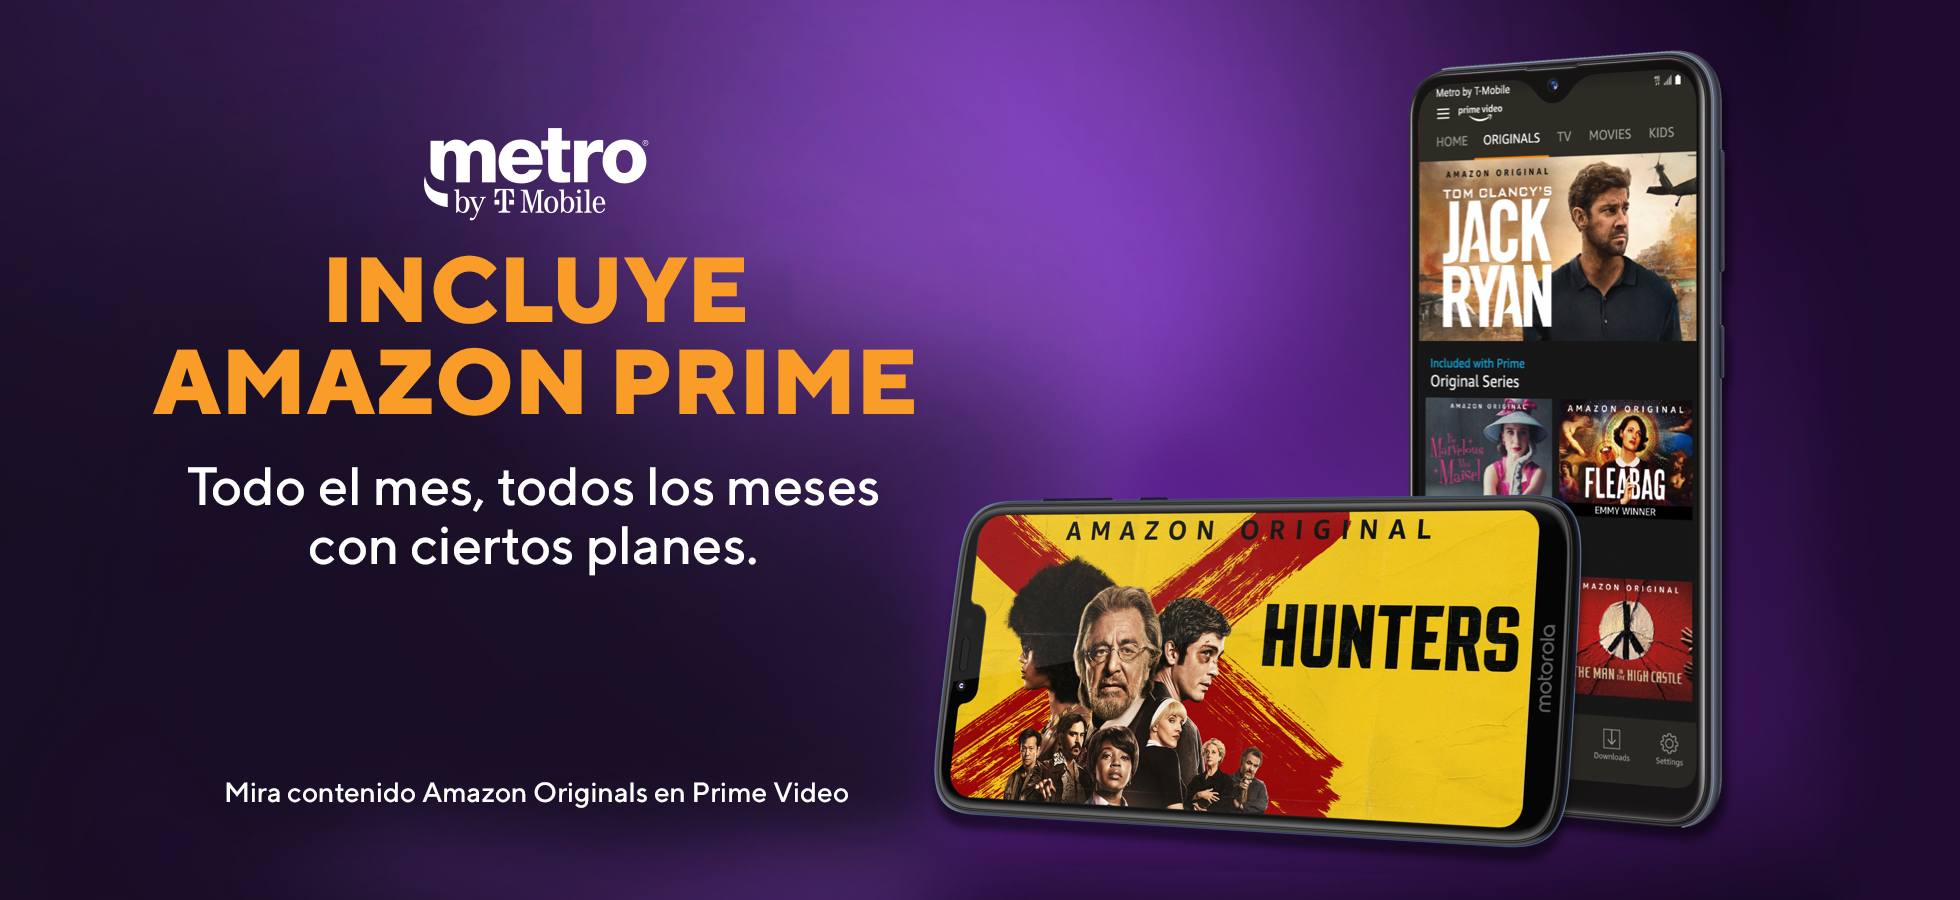 Amazon Prime. Ahora Metro by T-Mobile incluye Amazon Prime con tu plan de $60.